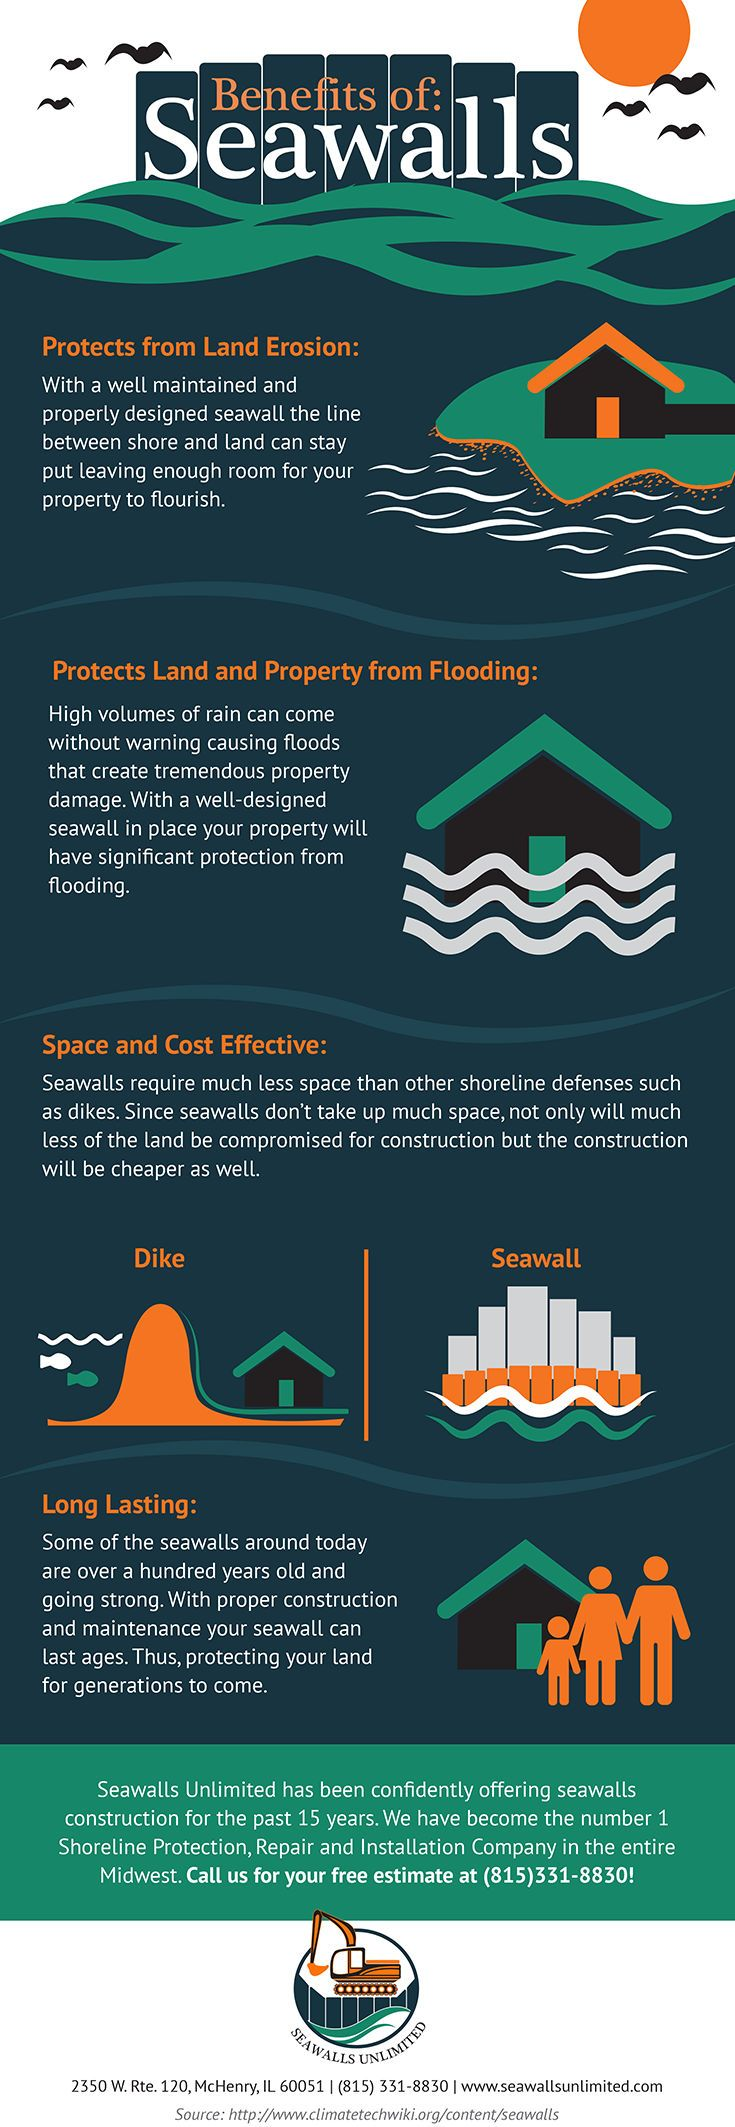 An infographic highlighting the benefits of seawalls.